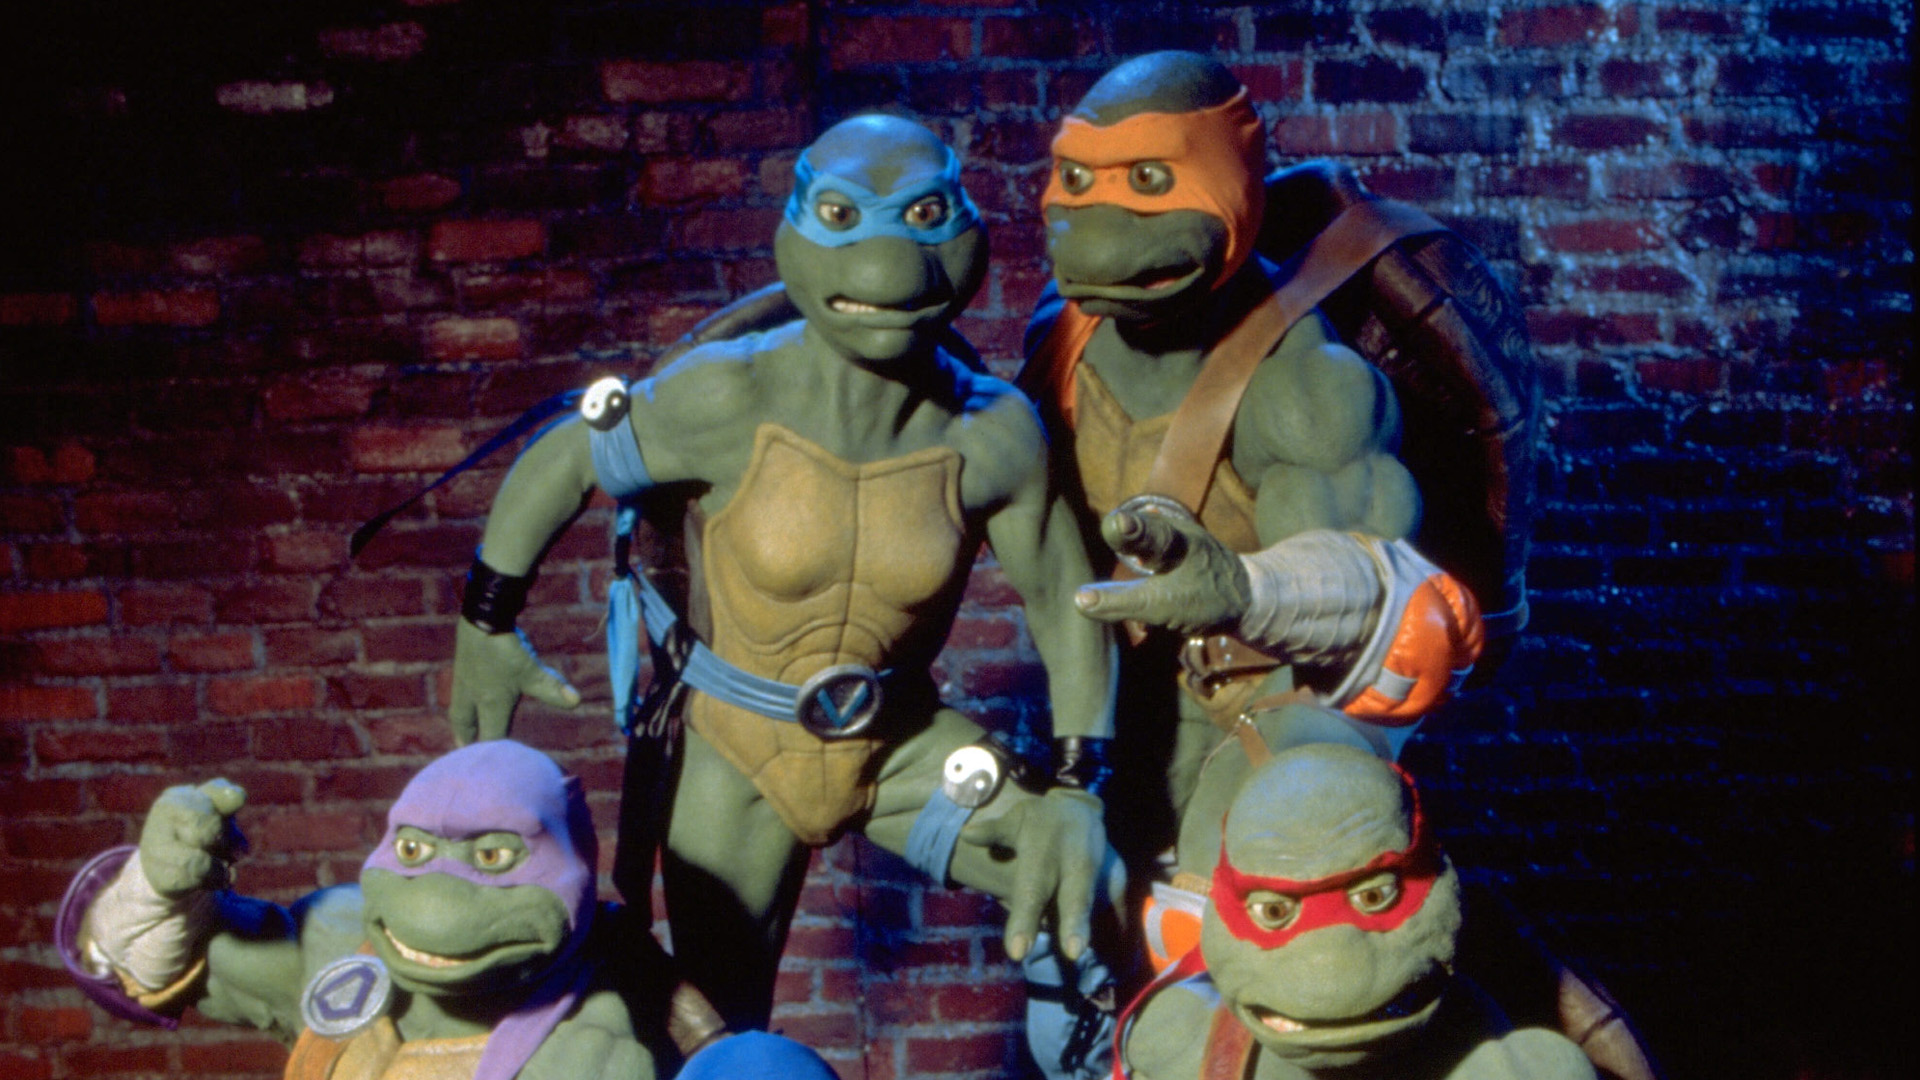 Ninja Turtles: The Next Mutation (1997) Review Part 2